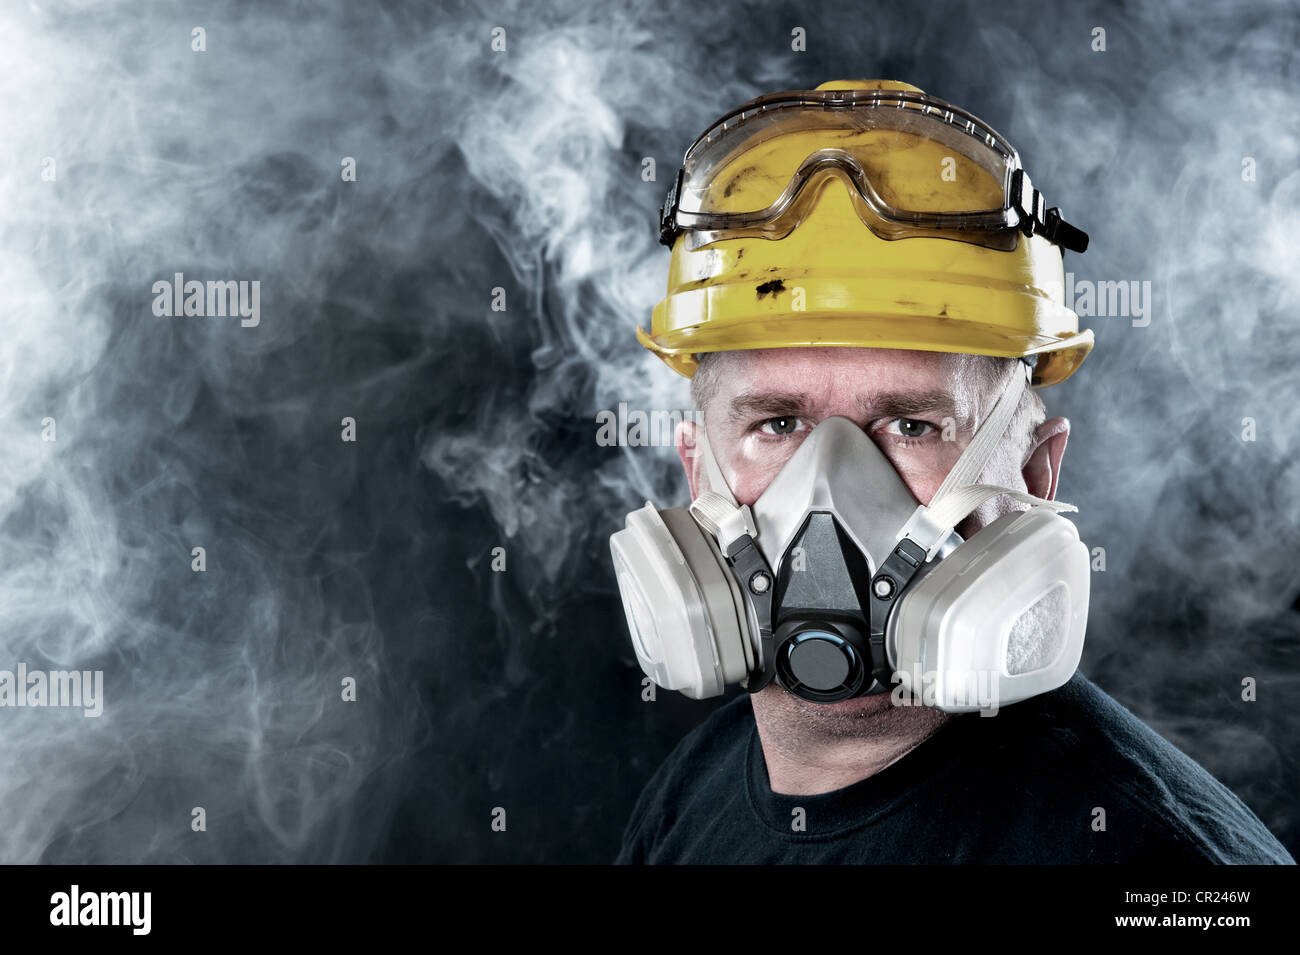 A rescue worker wears a respirator in a smoke, toxic atmosphere. Image show the importance of protection readiness - Stock Image